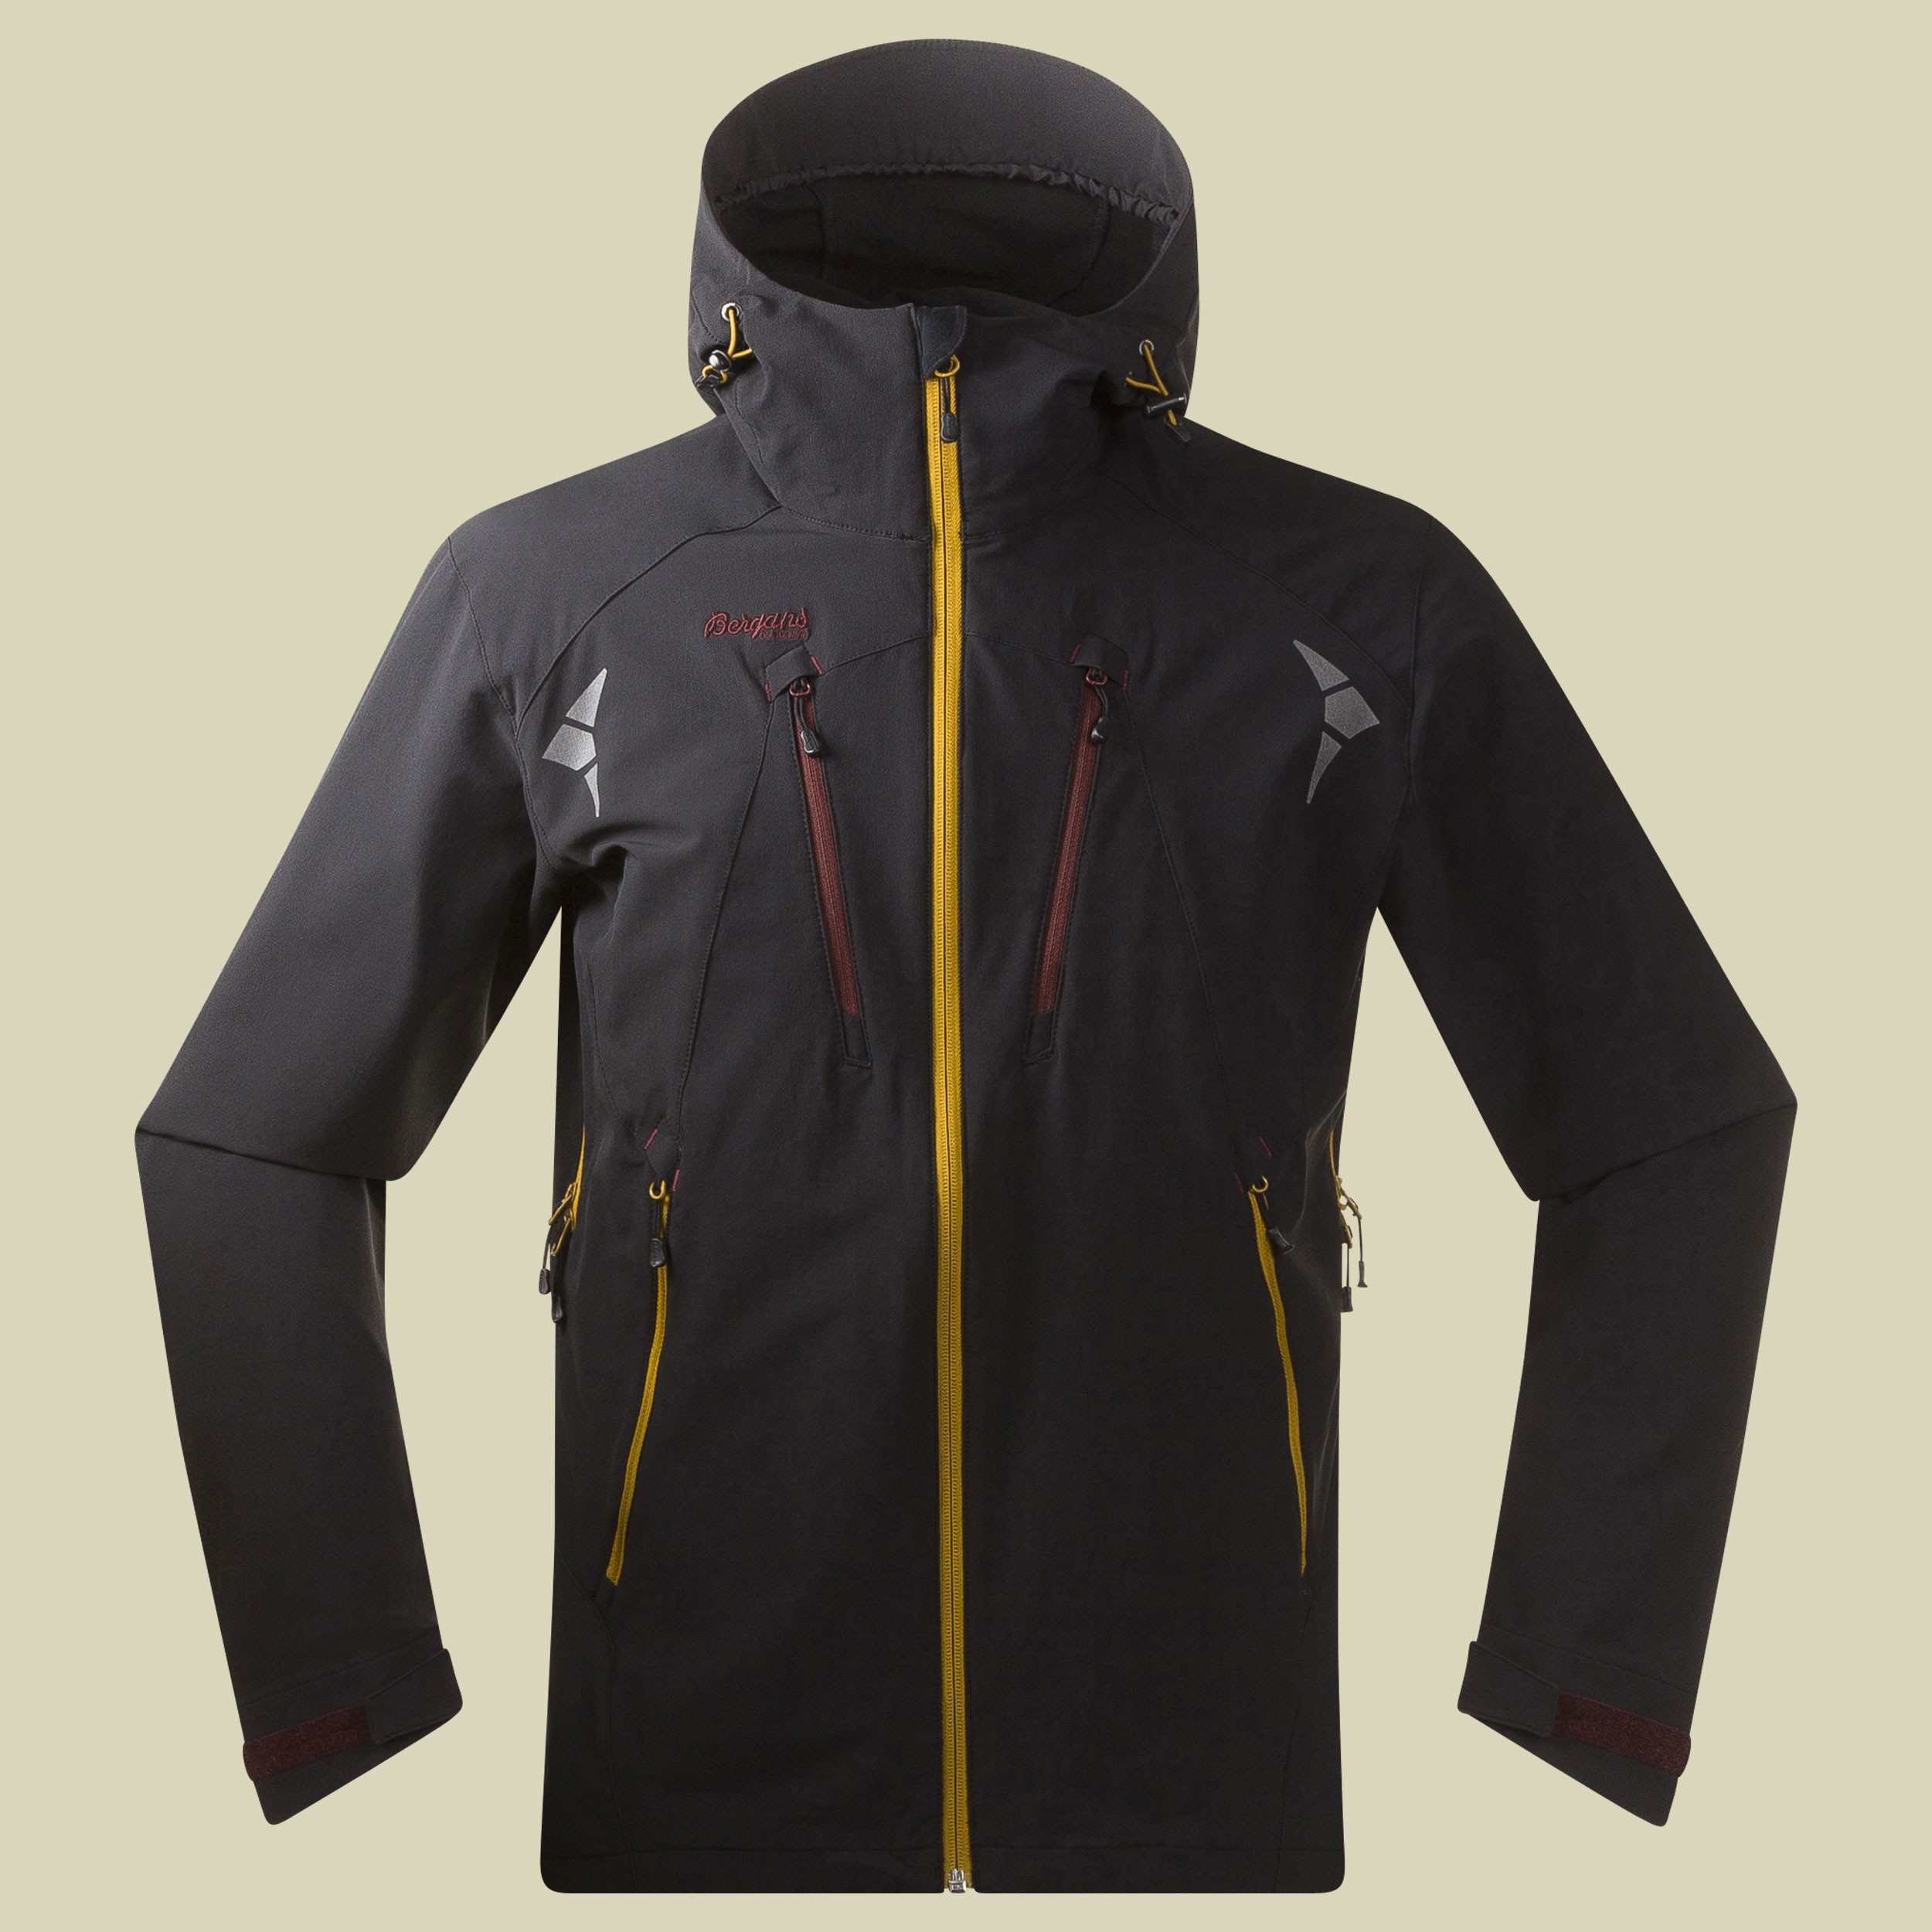 Utakleiv Jacket with Hood Men